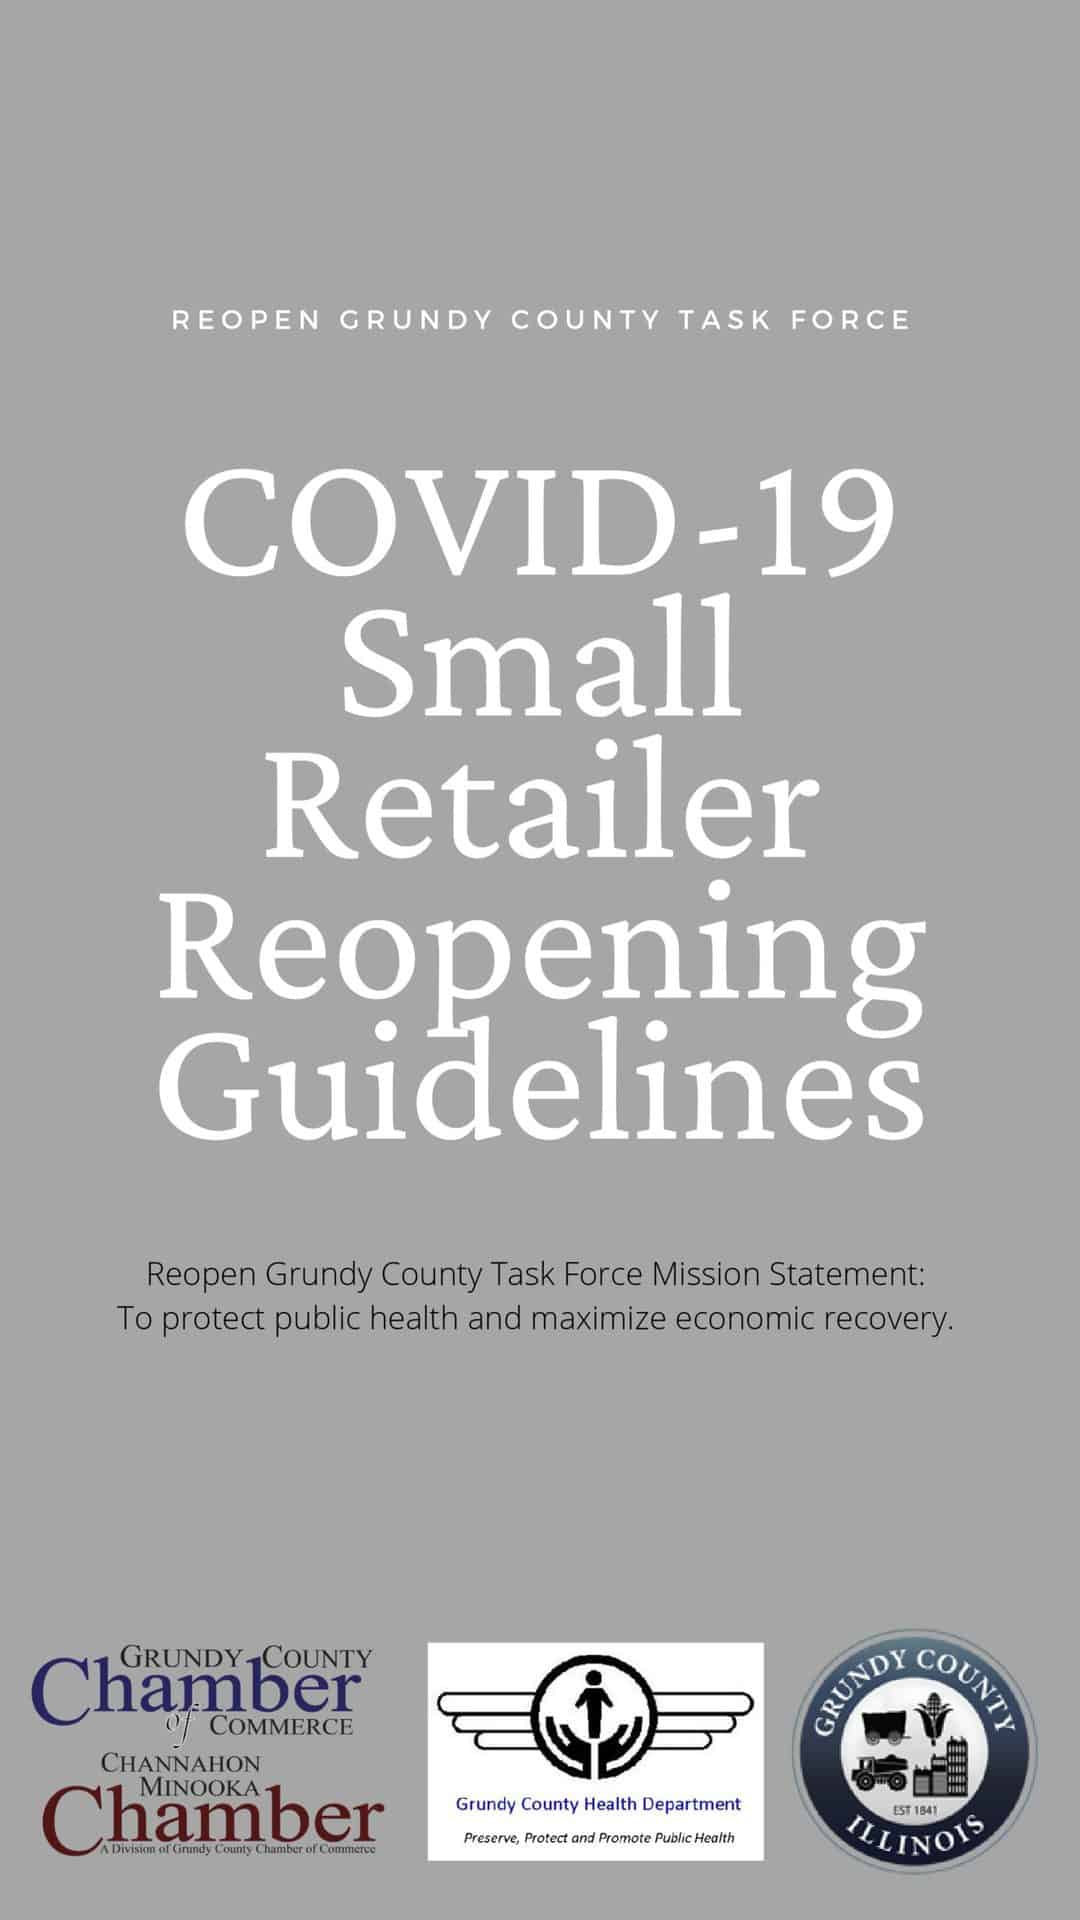 Small retailer guidelines-final_page-0001